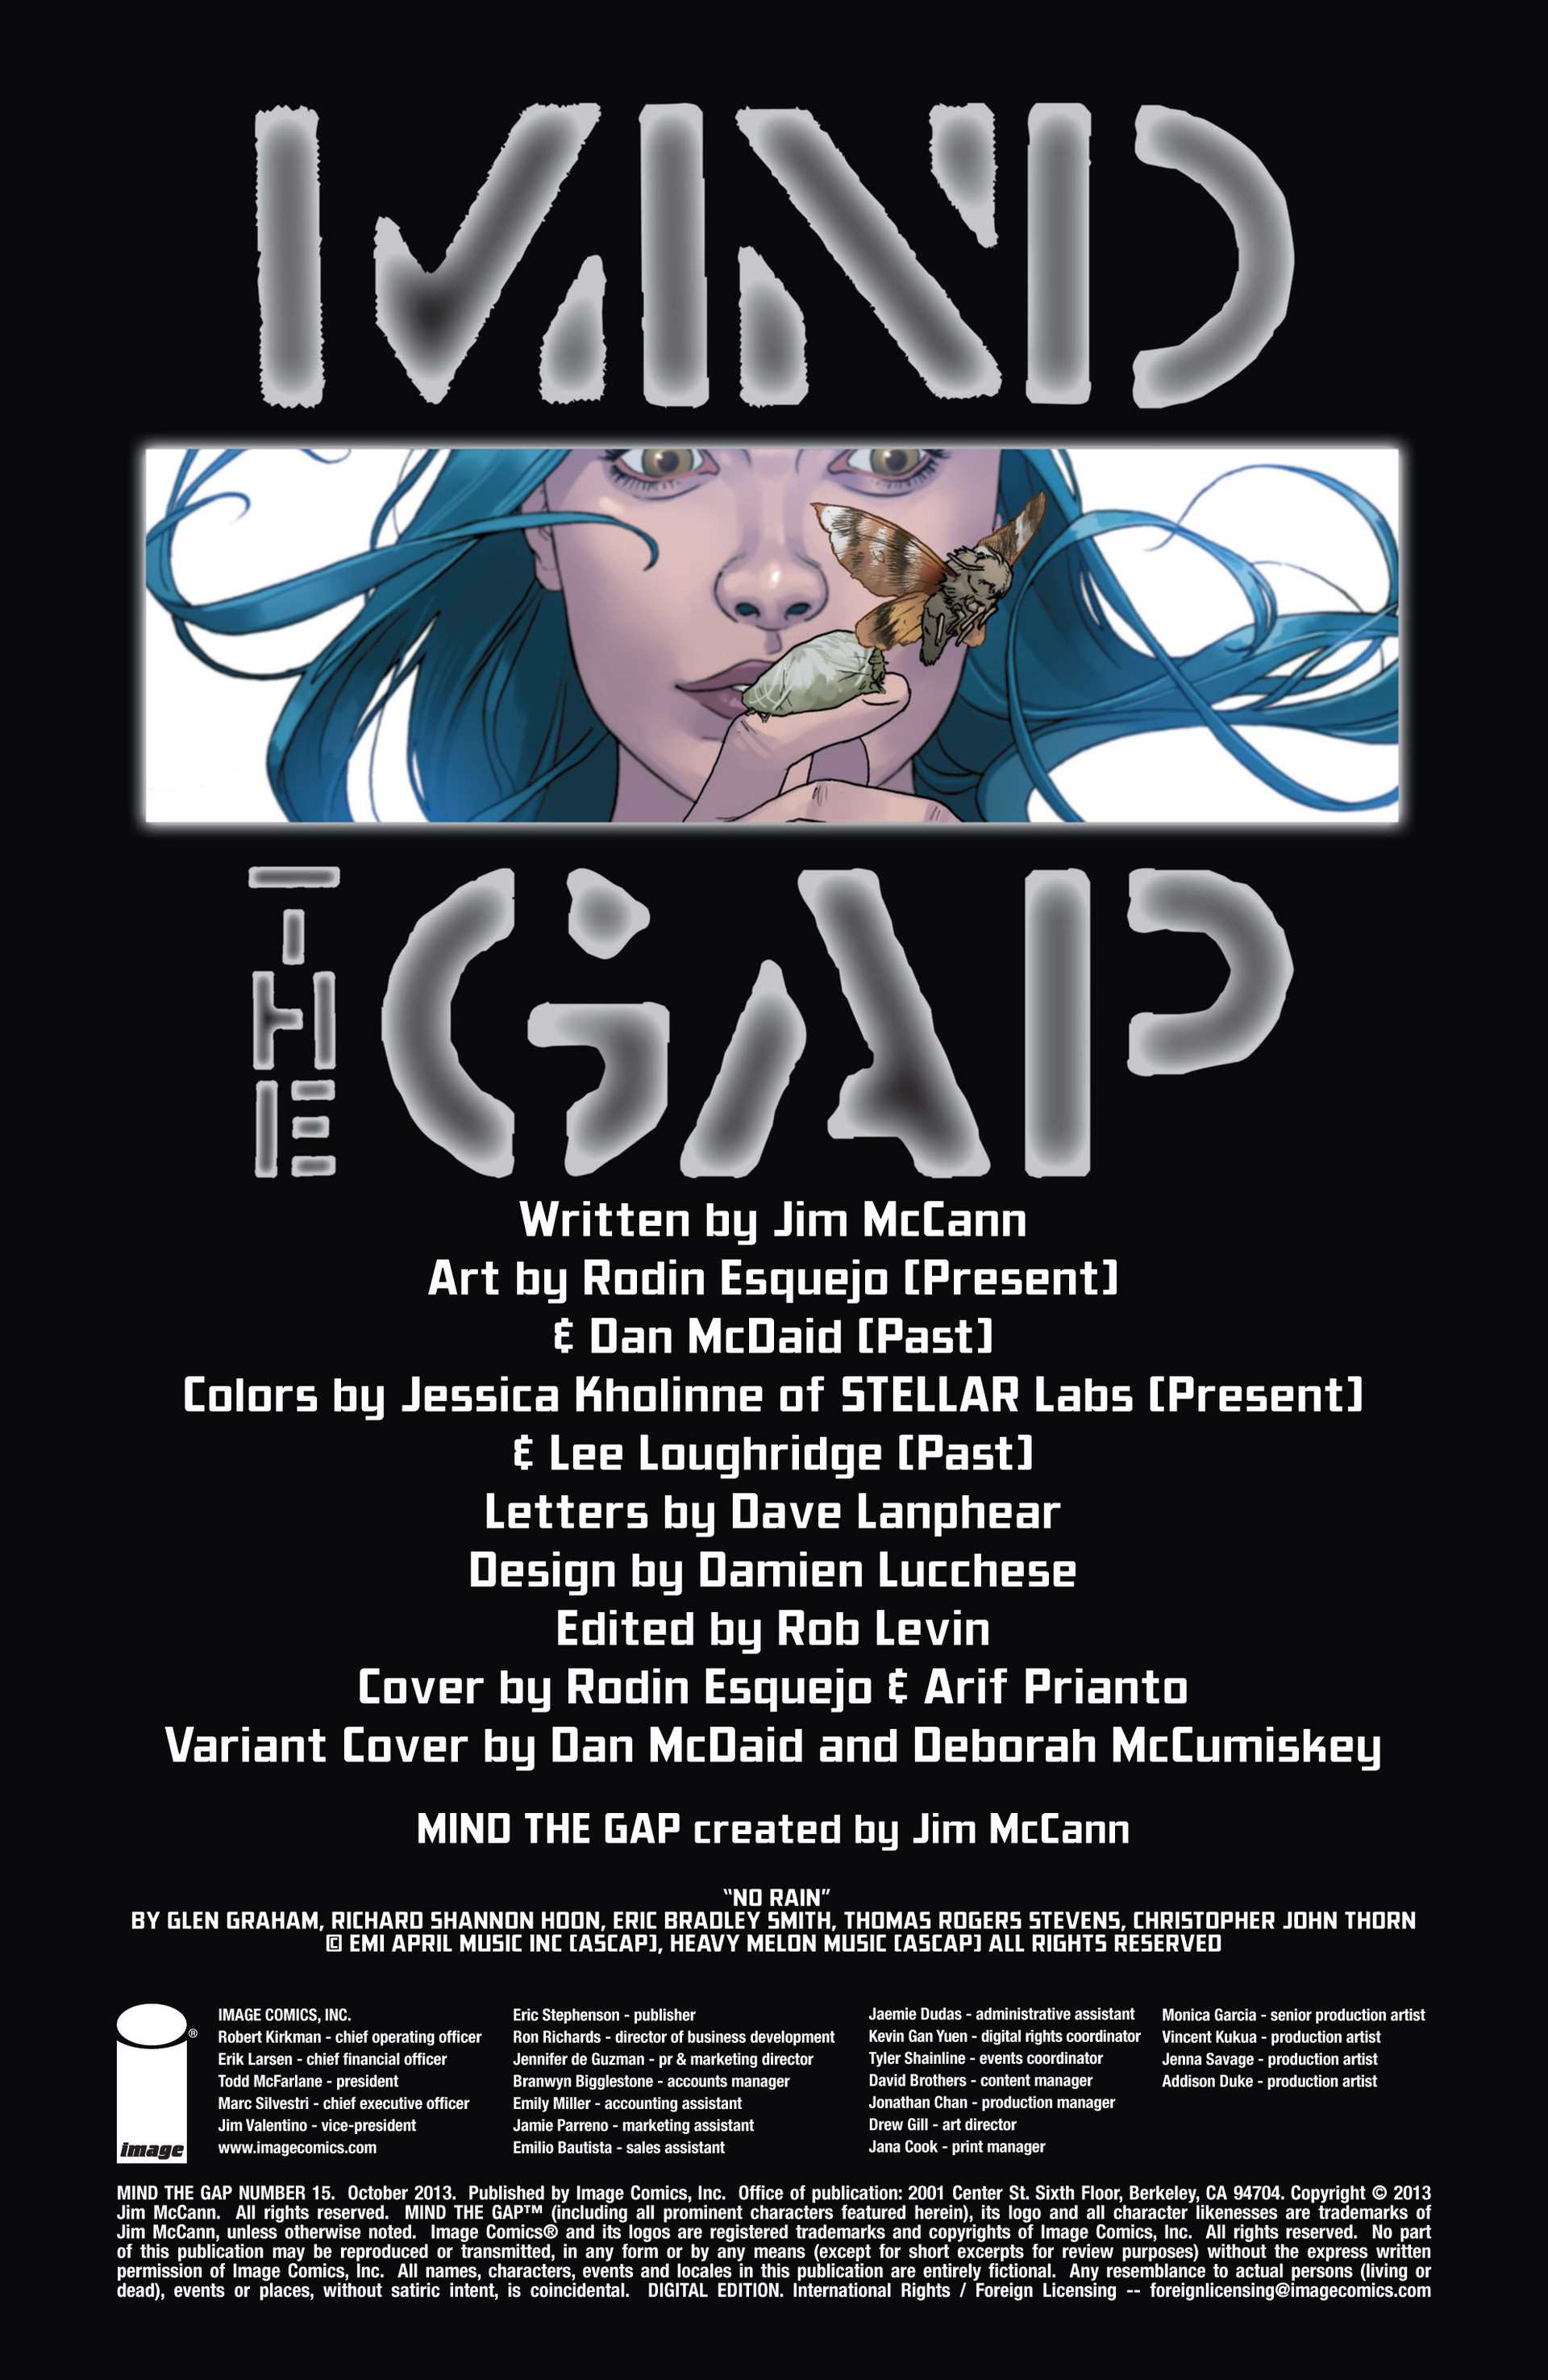 Read online Mind The Gap comic -  Issue #15 - 2